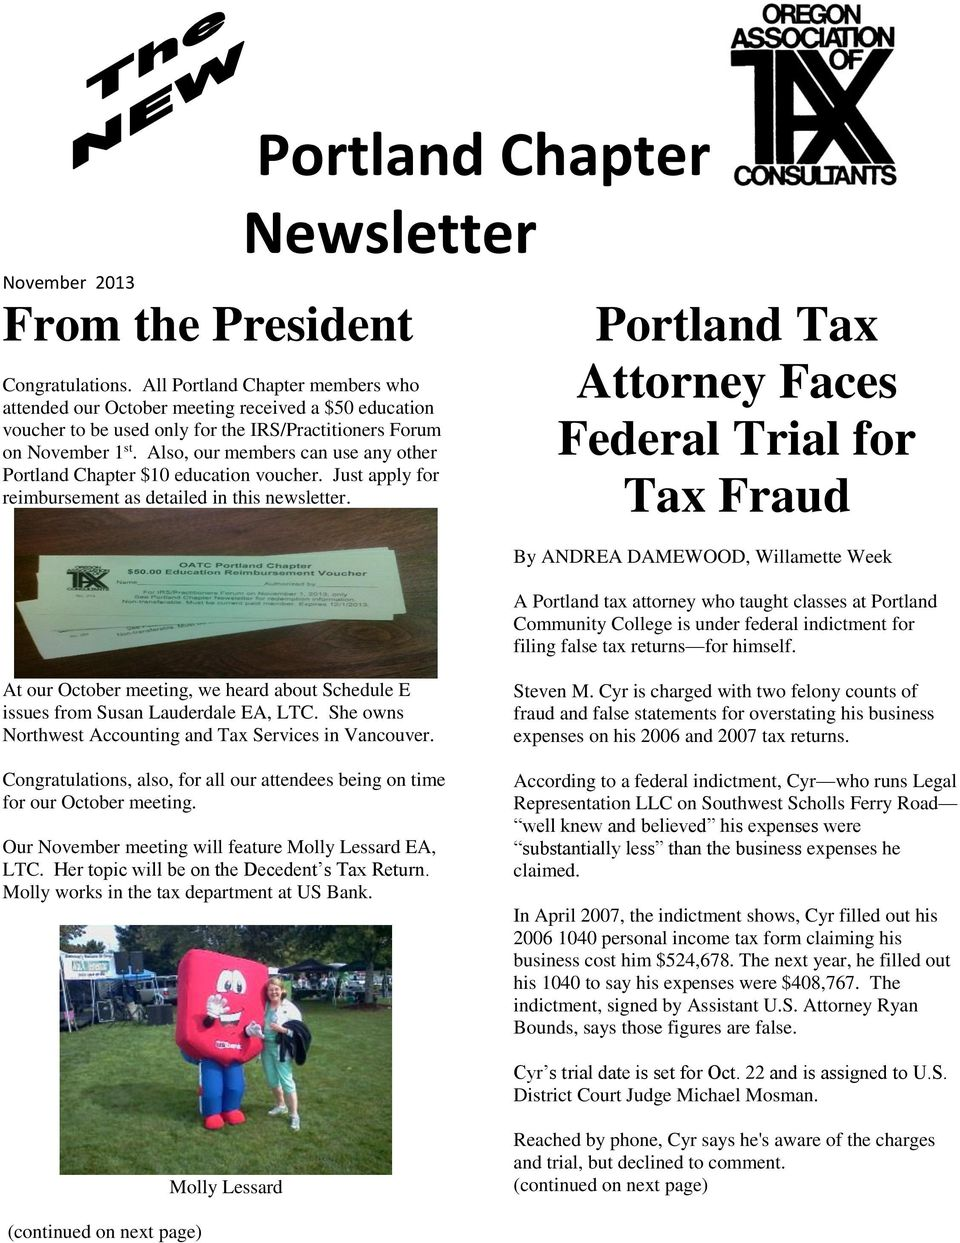 Also, our members can use any other Portland Chapter $10 education voucher. Just apply for reimbursement as detailed in this newsletter.